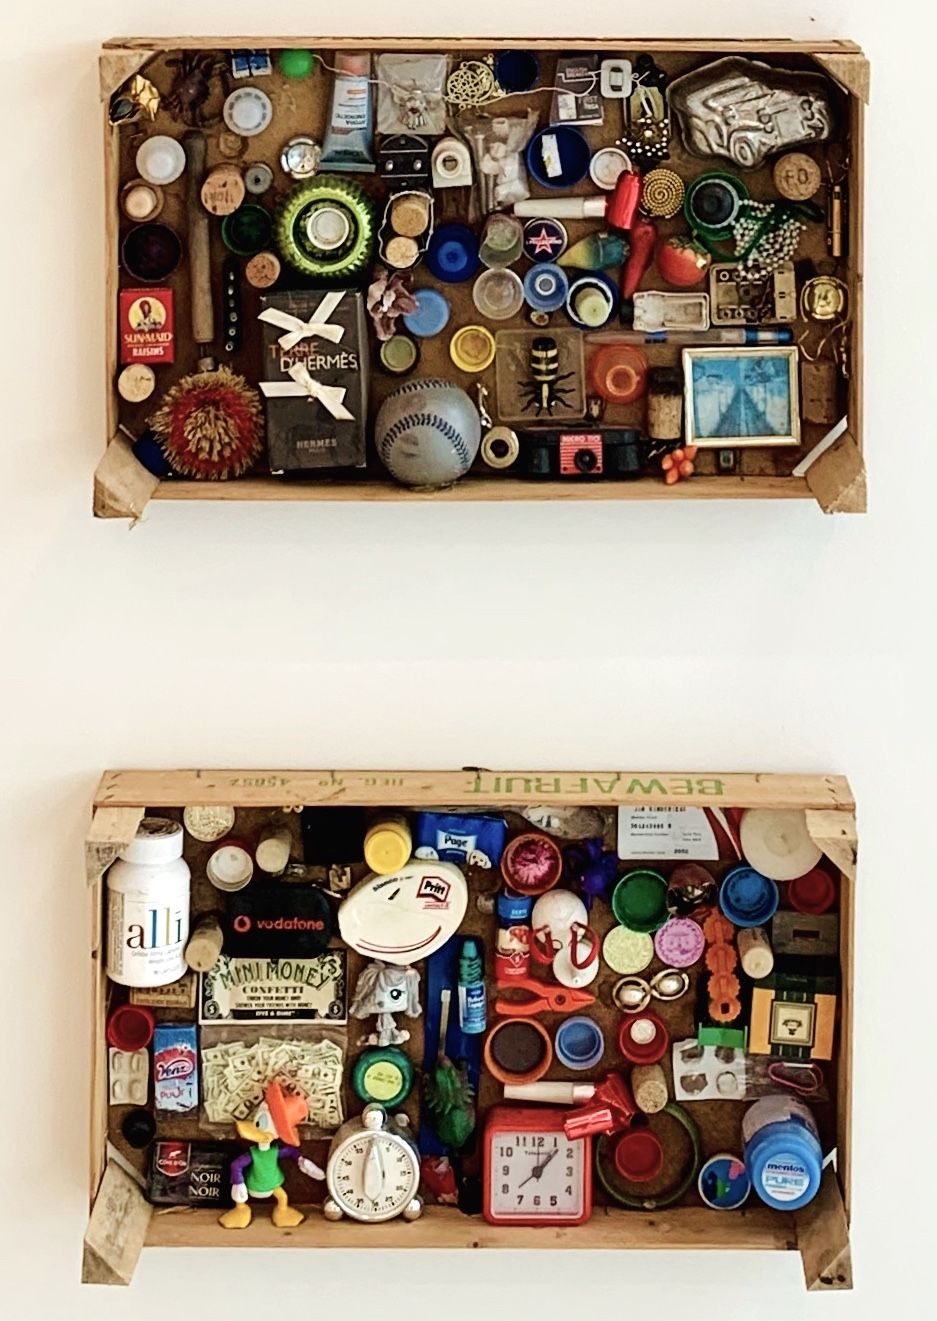 Jan Henderikse, bricolages